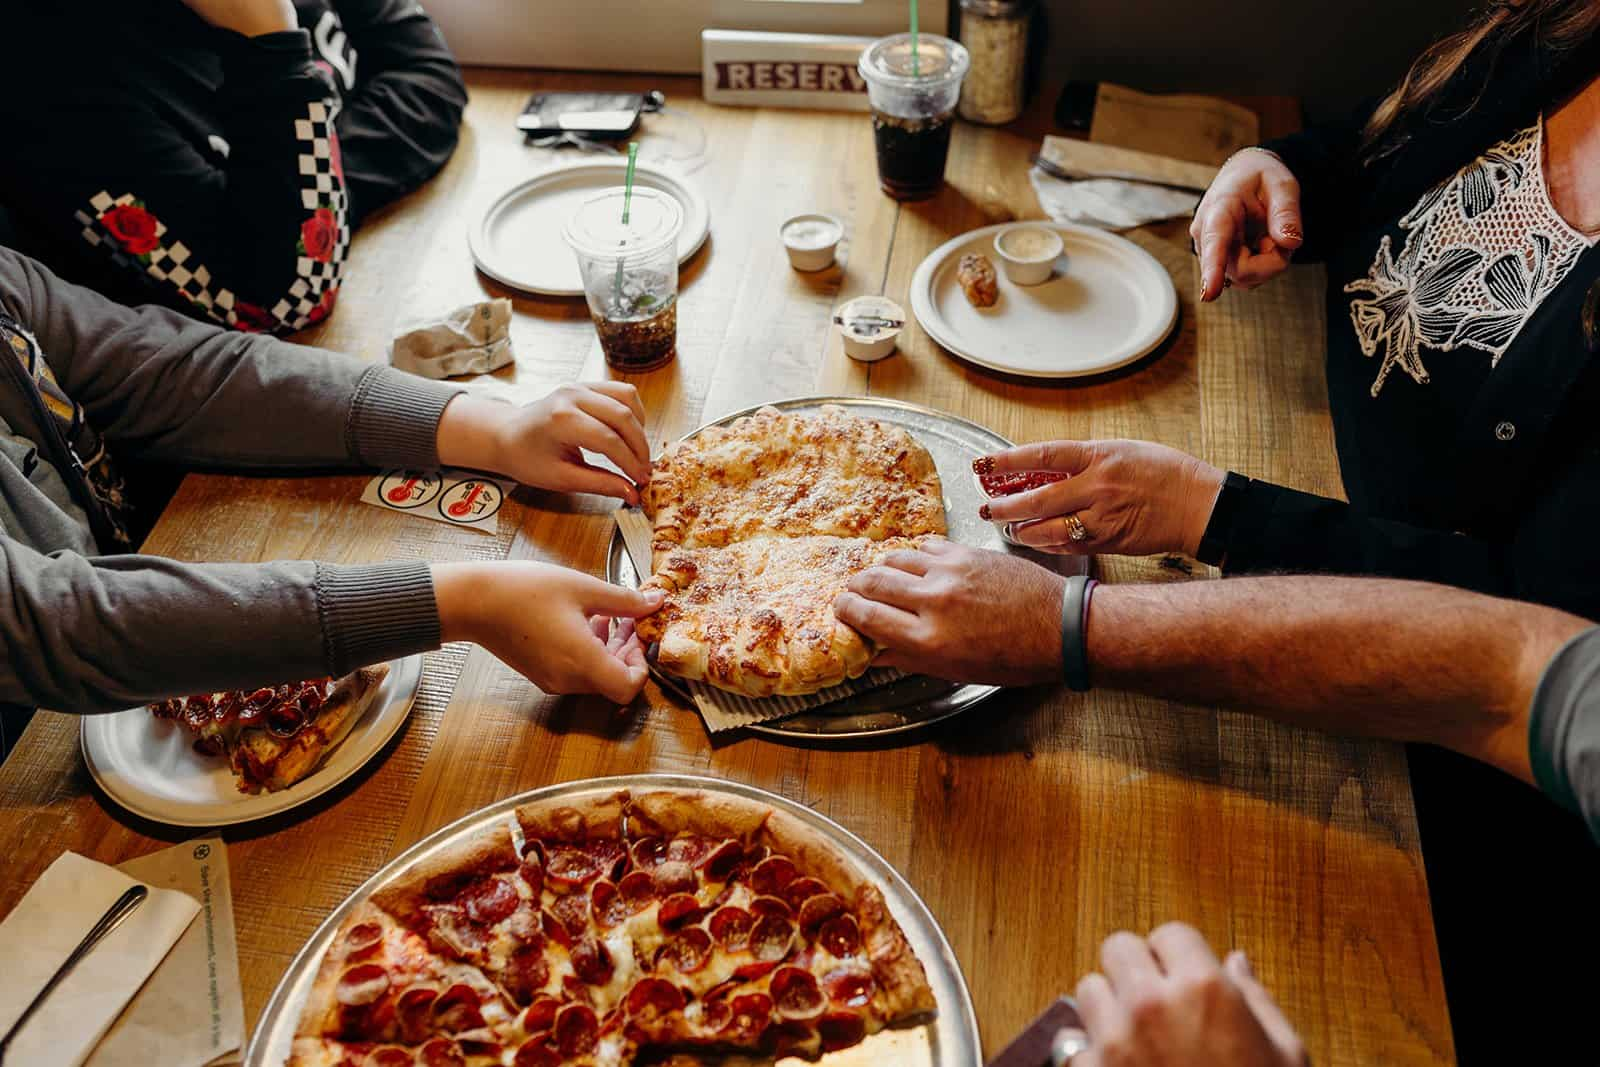 Park Street Pizza / Commercial Shoot 332